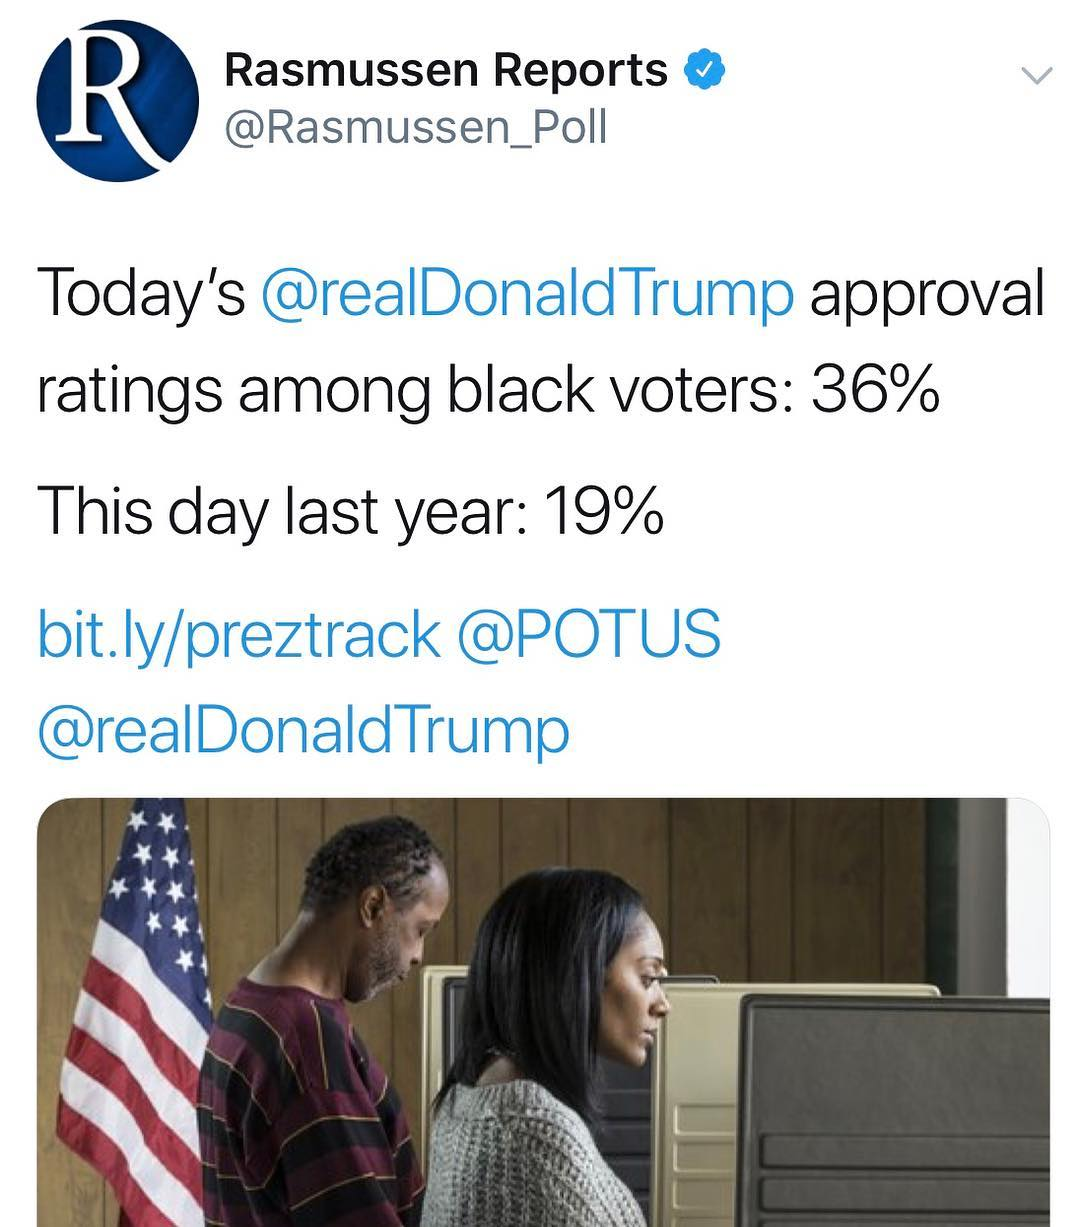 Donald J. Trump Instagram: Today's  approval ratings among black voters: 36%  This day last year: 19%  bit....